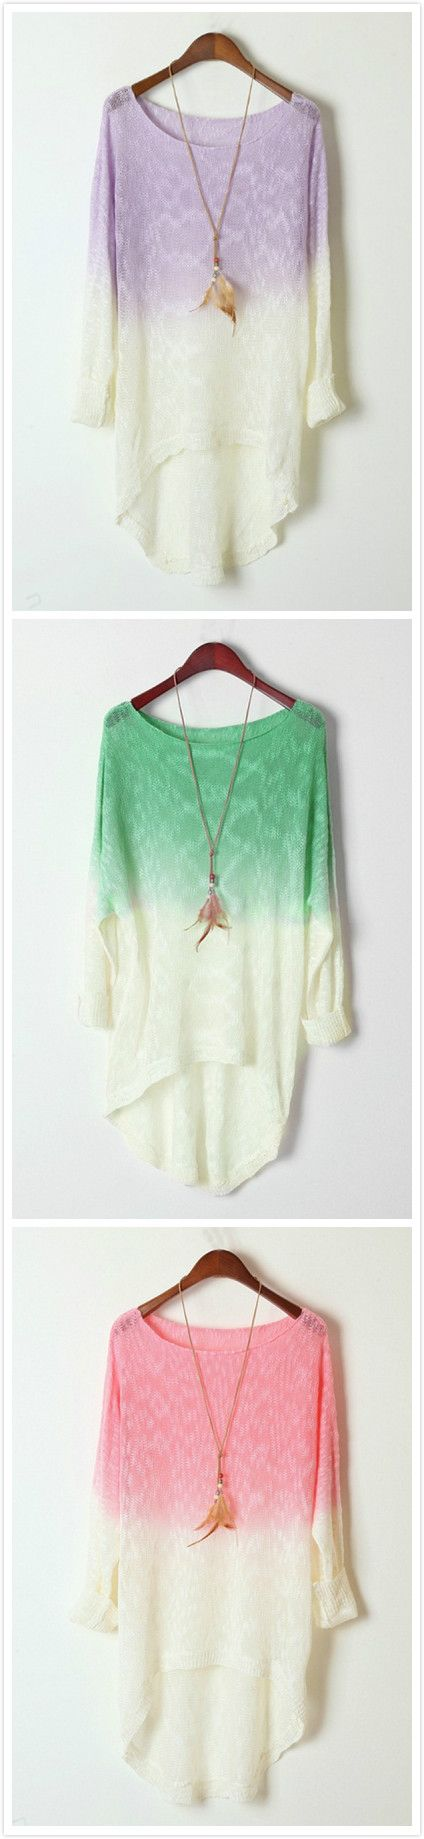 Azbro's Ombre High-low Sweater